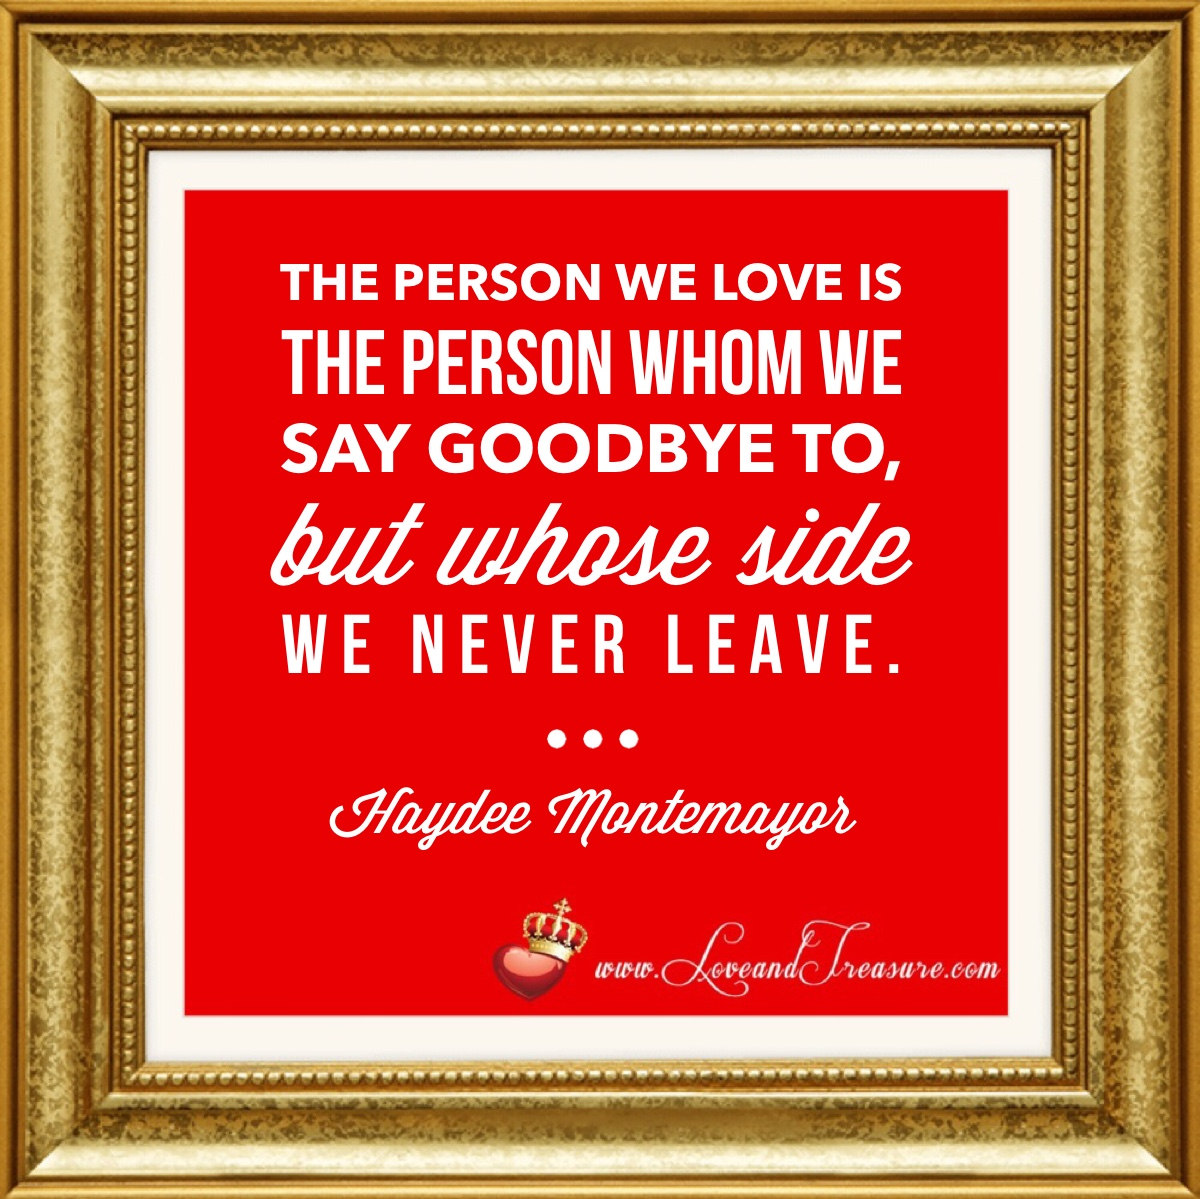 """The person we love is the person whom we say goodbye to, but whose side we never leave."" -Haydee Montemayor, www.loveandtreasure.com, love and treasure"